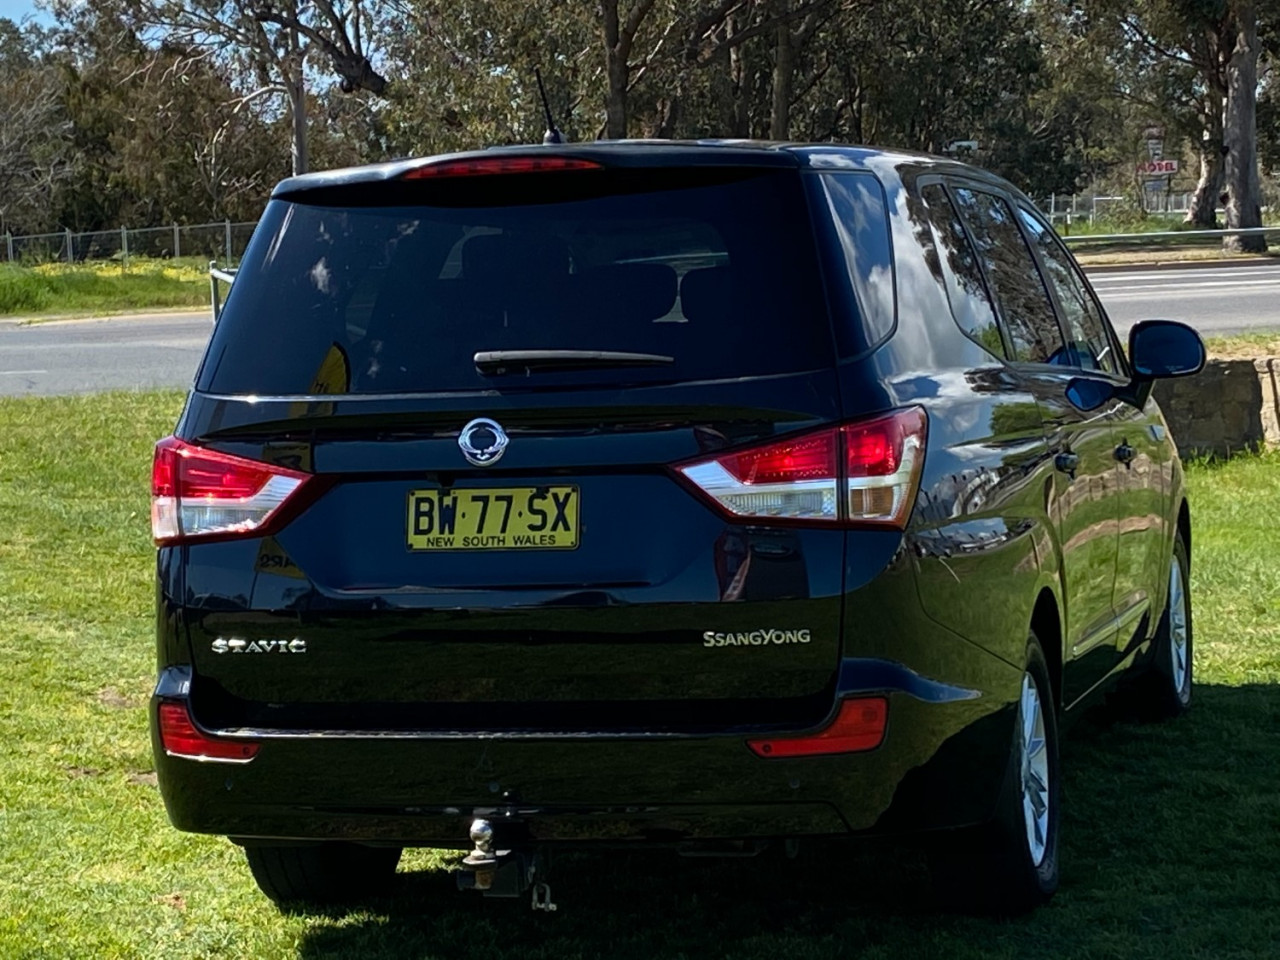 2013 SsangYong Stavic A100 MY13 Wagon Image 25